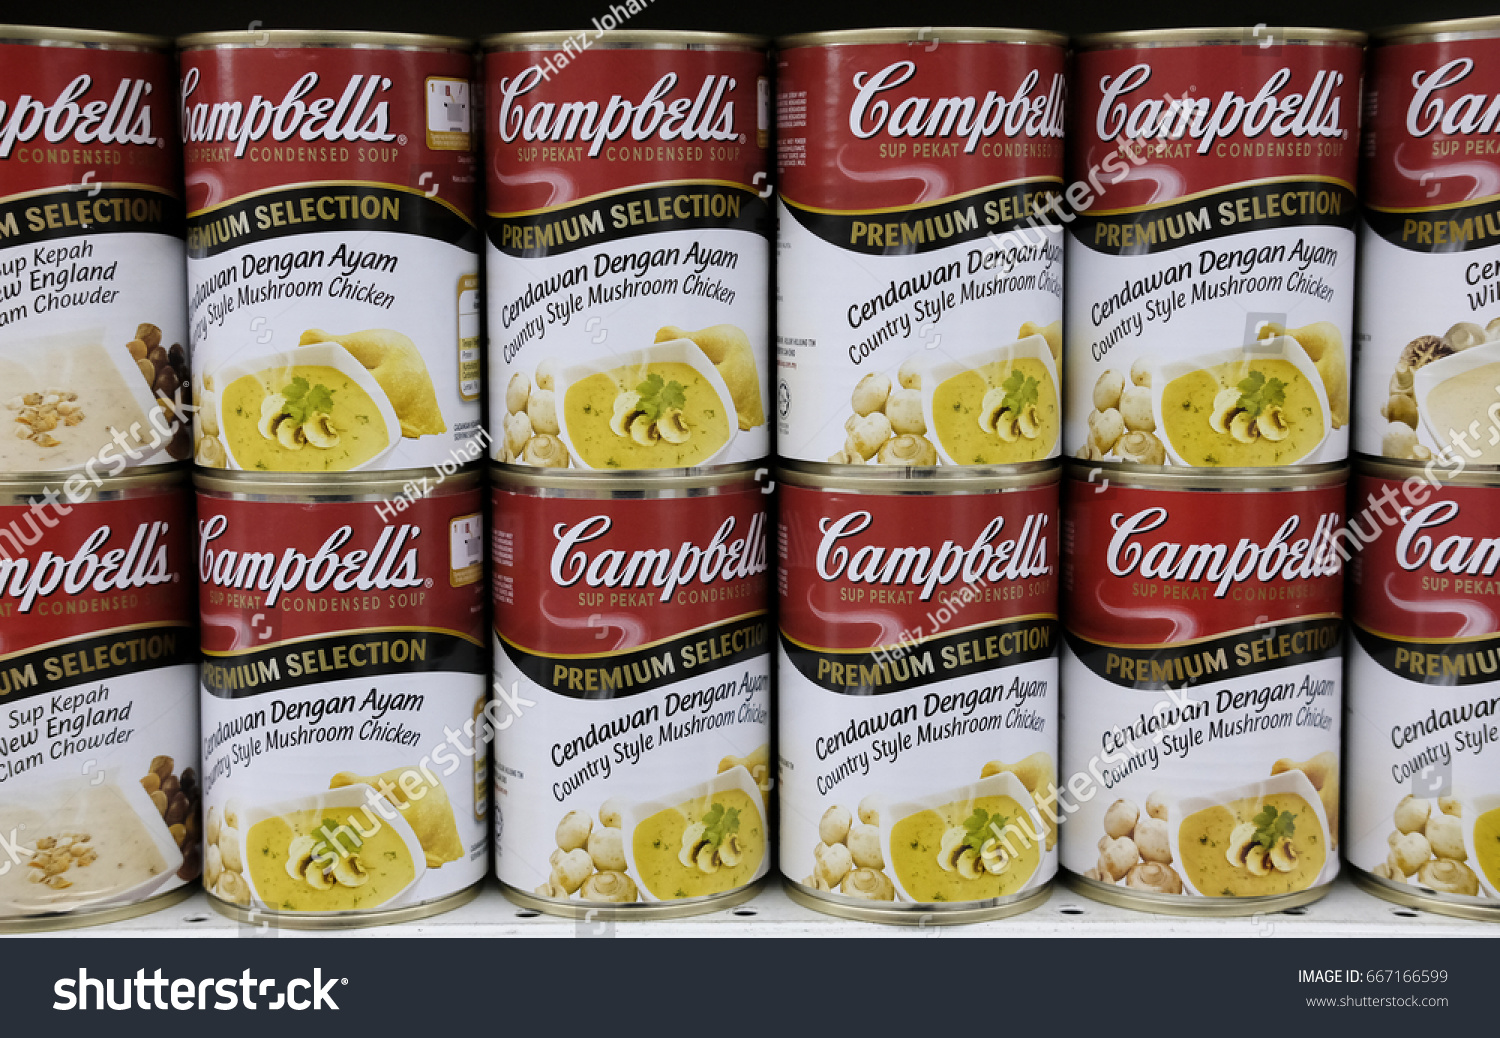 the company overview of cambell soup company Valuation of campbell soup company susan price december 11, 2008 dr jacqueline garner finance 601 business description & brief history campbell soup company is a global manufacturer of high quality soup, beverage, confectionery, and prepared food products.